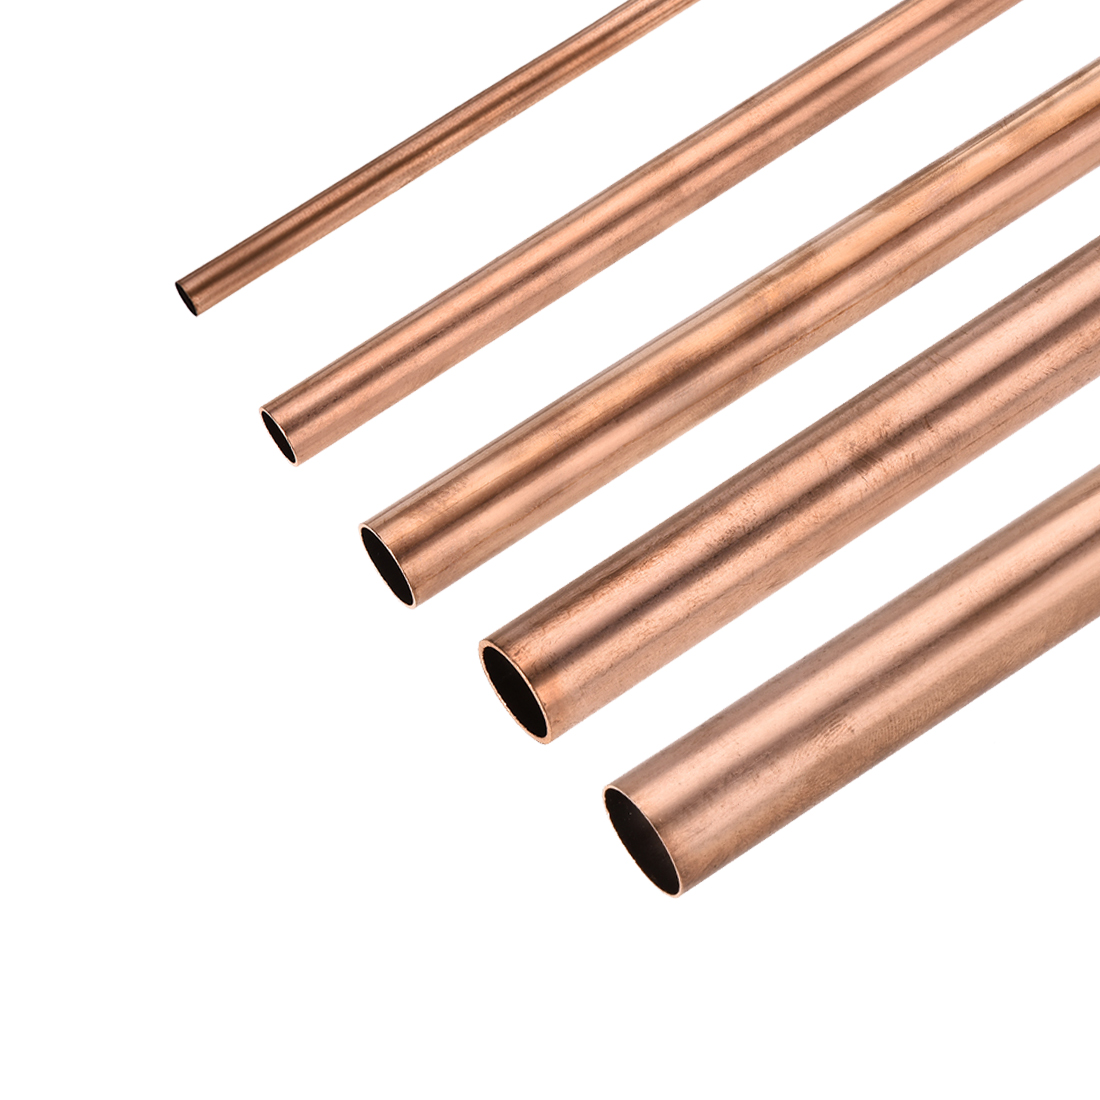 uxcell-1pc-copper-round-tube-8mm-30mm-od-100mm-200mm-300mm-length-hollow-straight-pipe-tubing-for-diy-crafts-industrial